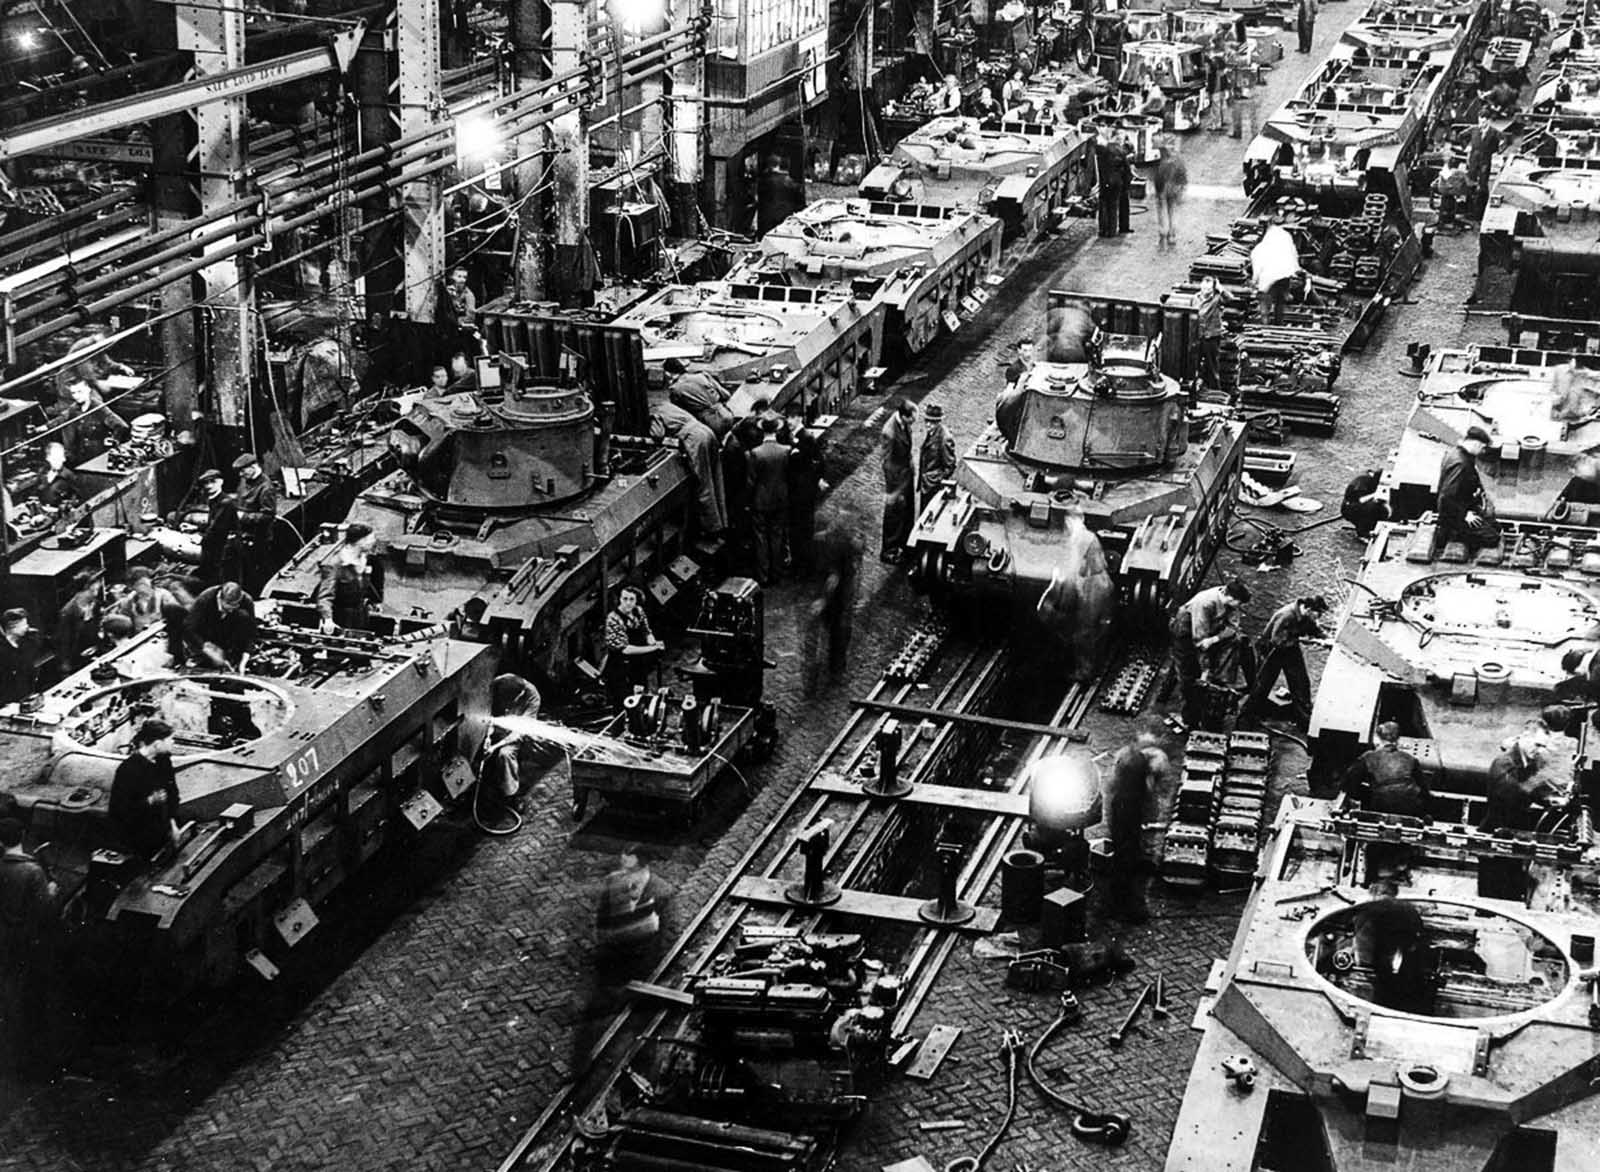 A tank assembly line is a flurry of activity during the